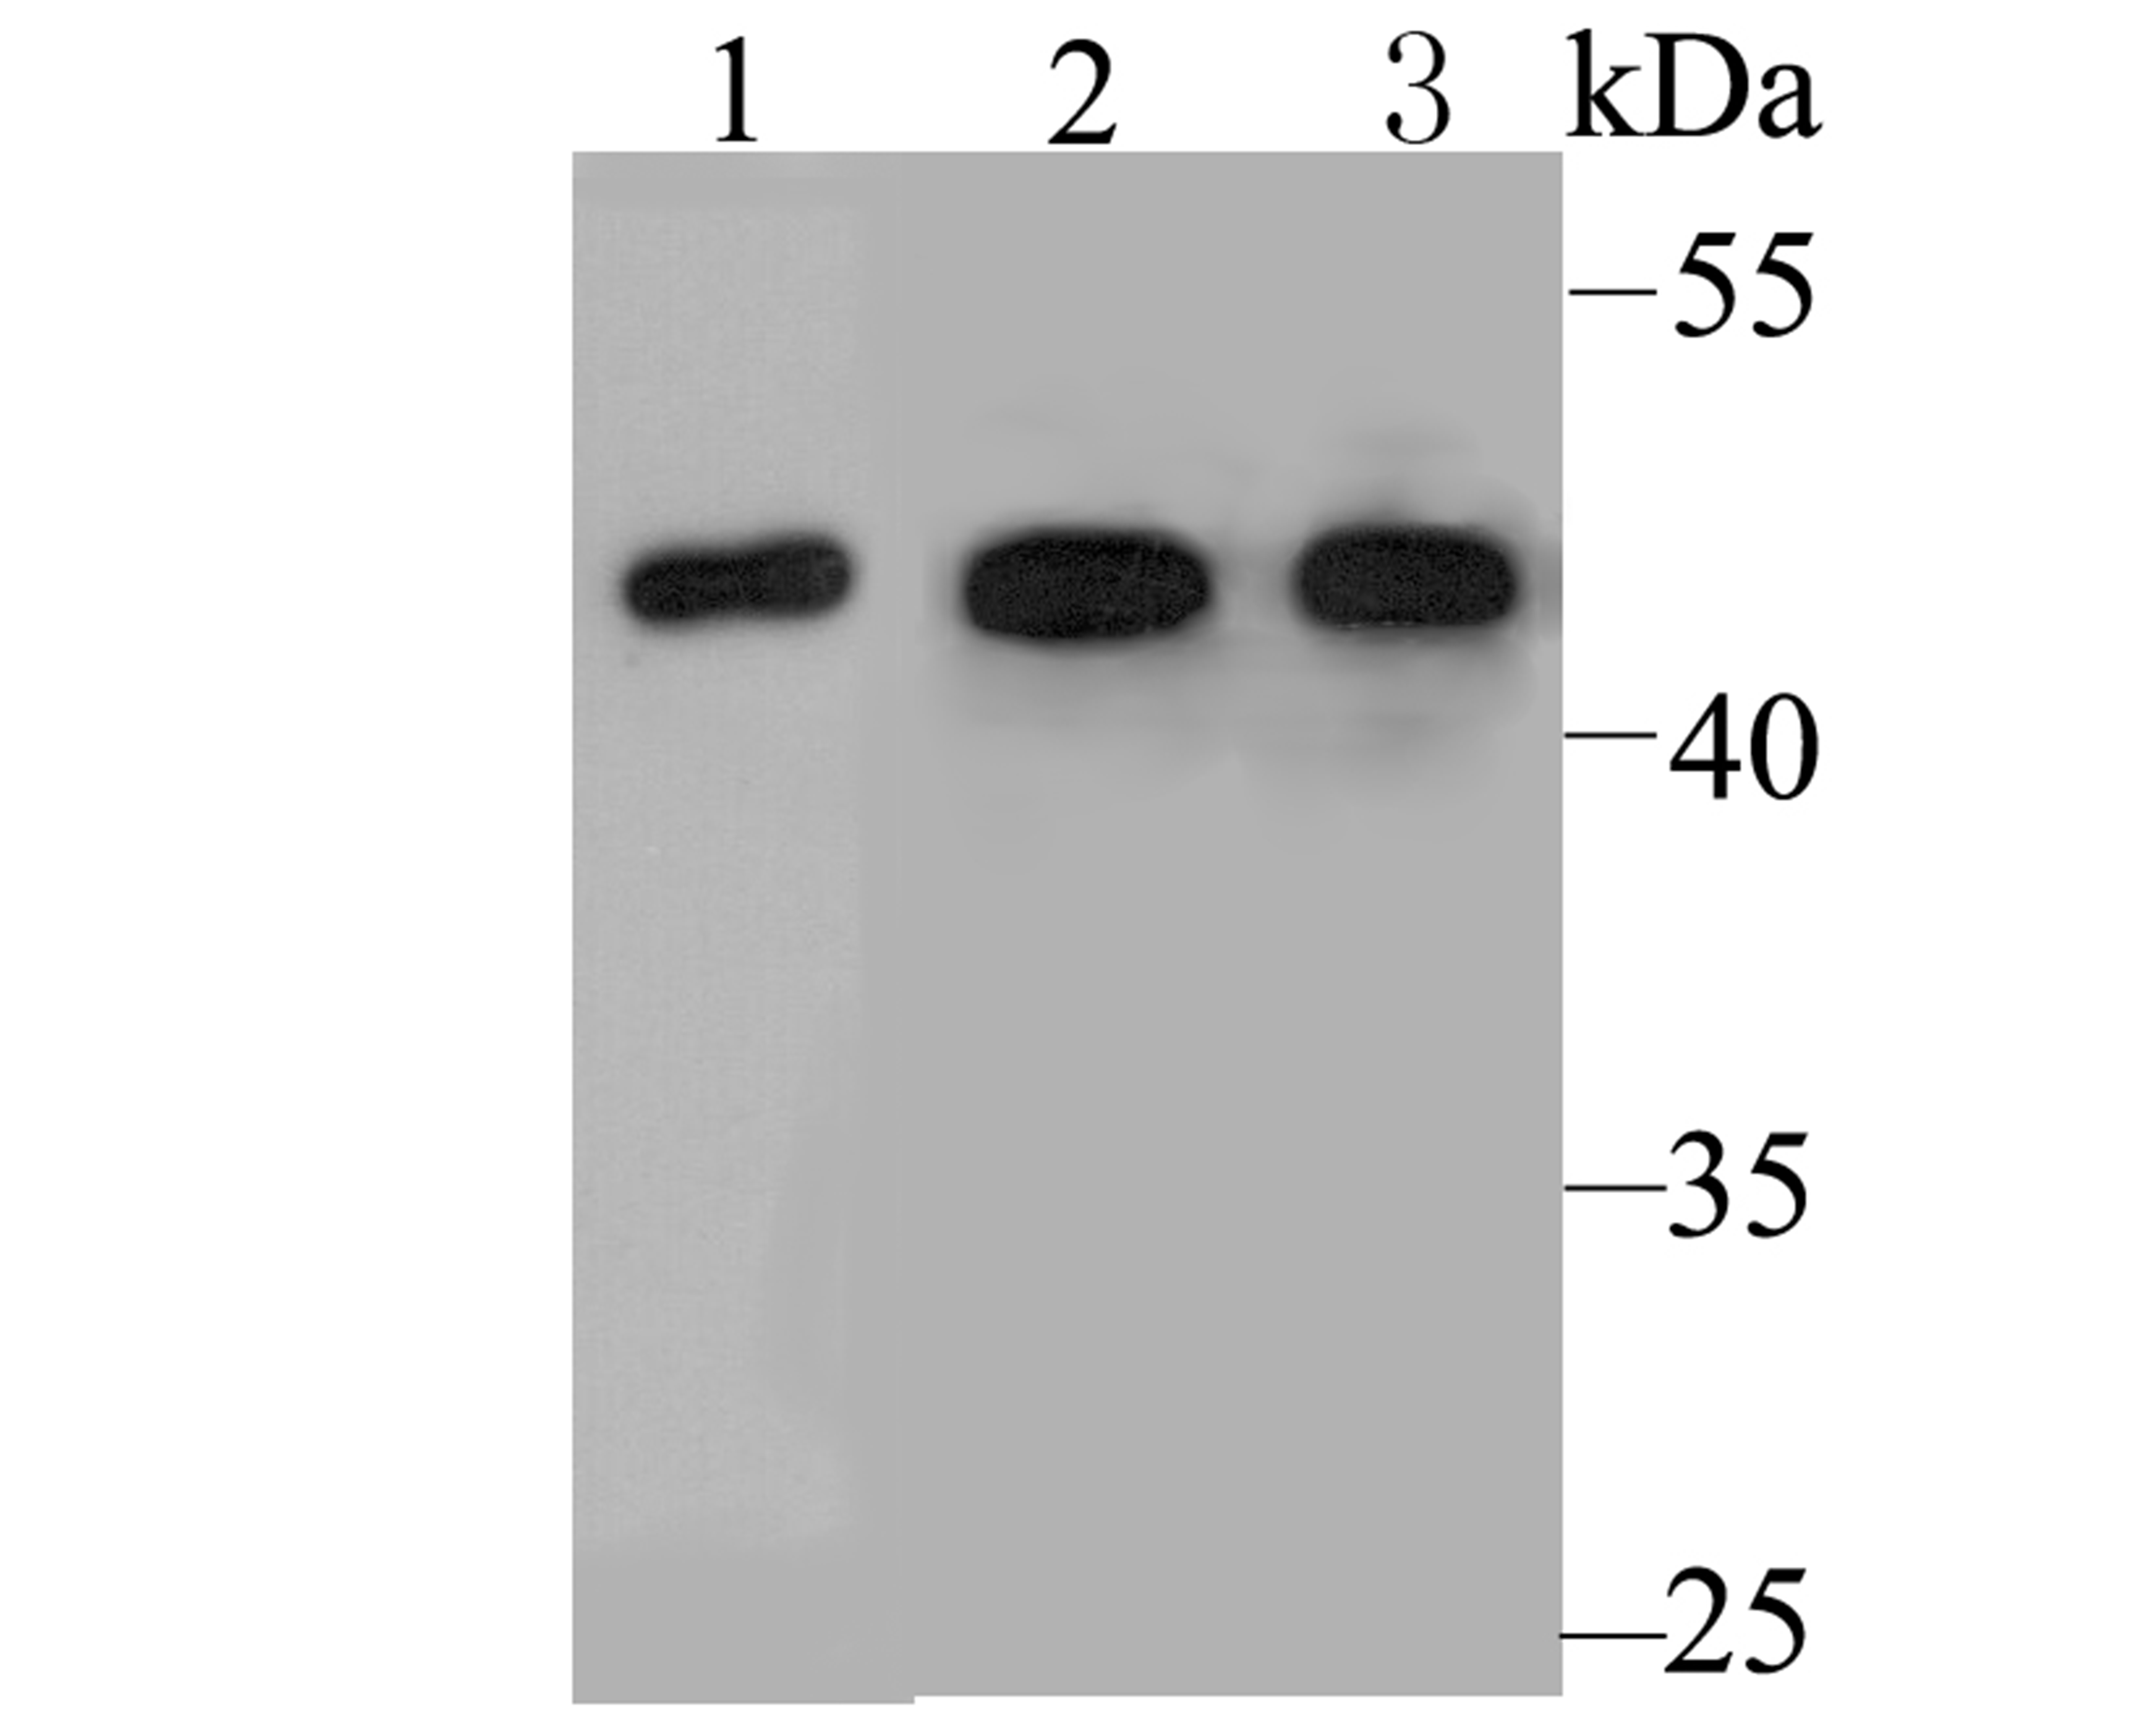 Western blot analysis of Cytokeratin 19 on rat lung tissue lysate. Proteins were transferred to a PVDF membrane and blocked with 5% BSA in PBS for 1 hour at room temperature. The primary antibody was used at a 1:20,000 dilution in 5% BSA at room temperature for 2 hours. Goat Anti-Rabbit IgG - HRP Secondary Antibody (HA1001) at 1:5,000 dilution was used for 1 hour at room temperature.<br /> Positive control: <br /> Lane 1: Rat lung tissue lysate<br /> Lane 2: MCF-7 cell lysate<br /> Lane 3: Mouse lung tissue lysate